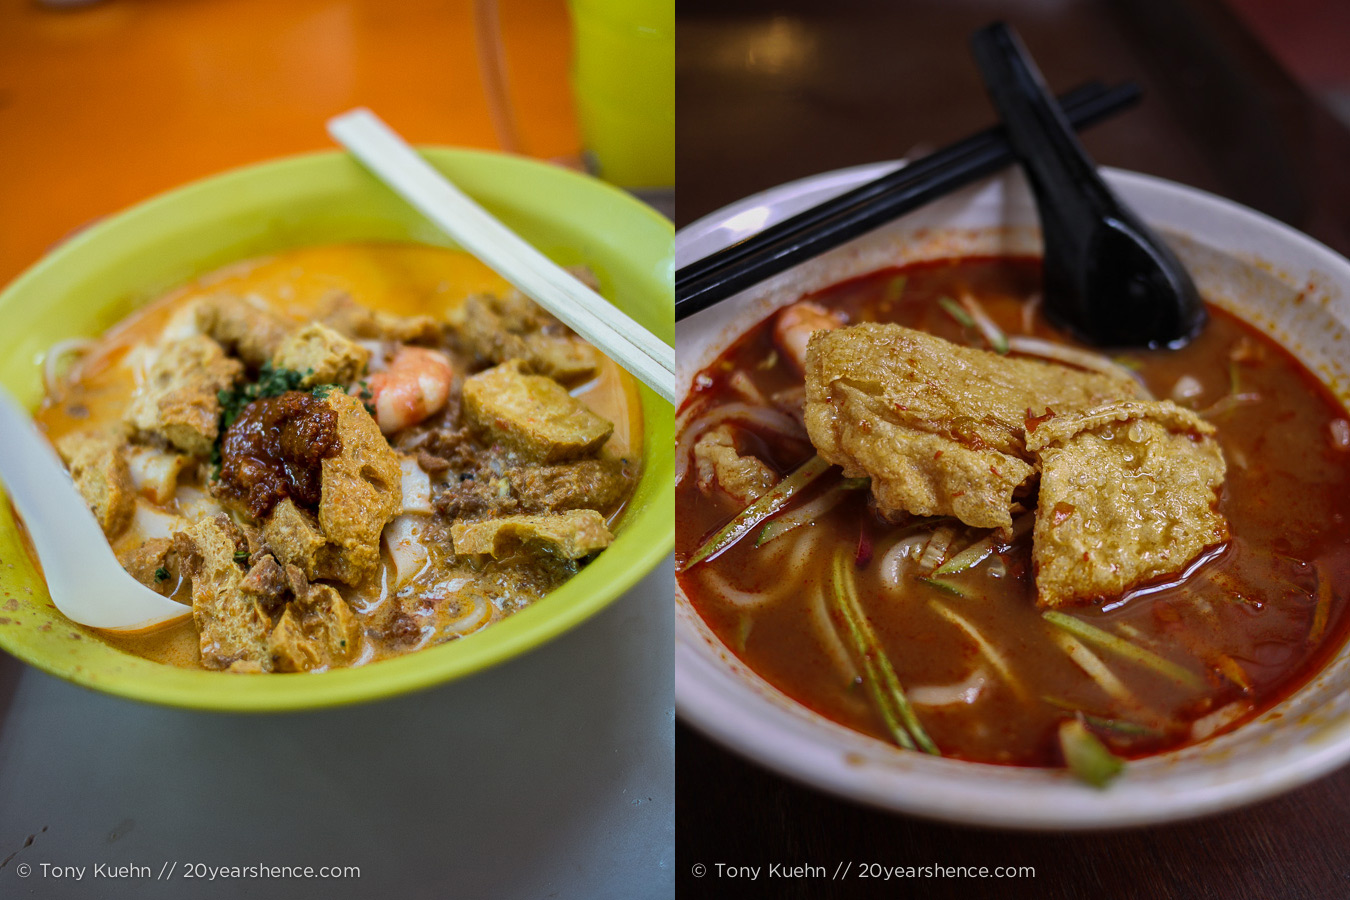 A taste of Malaysia—Baba laksa on the left, asam laksa on the right